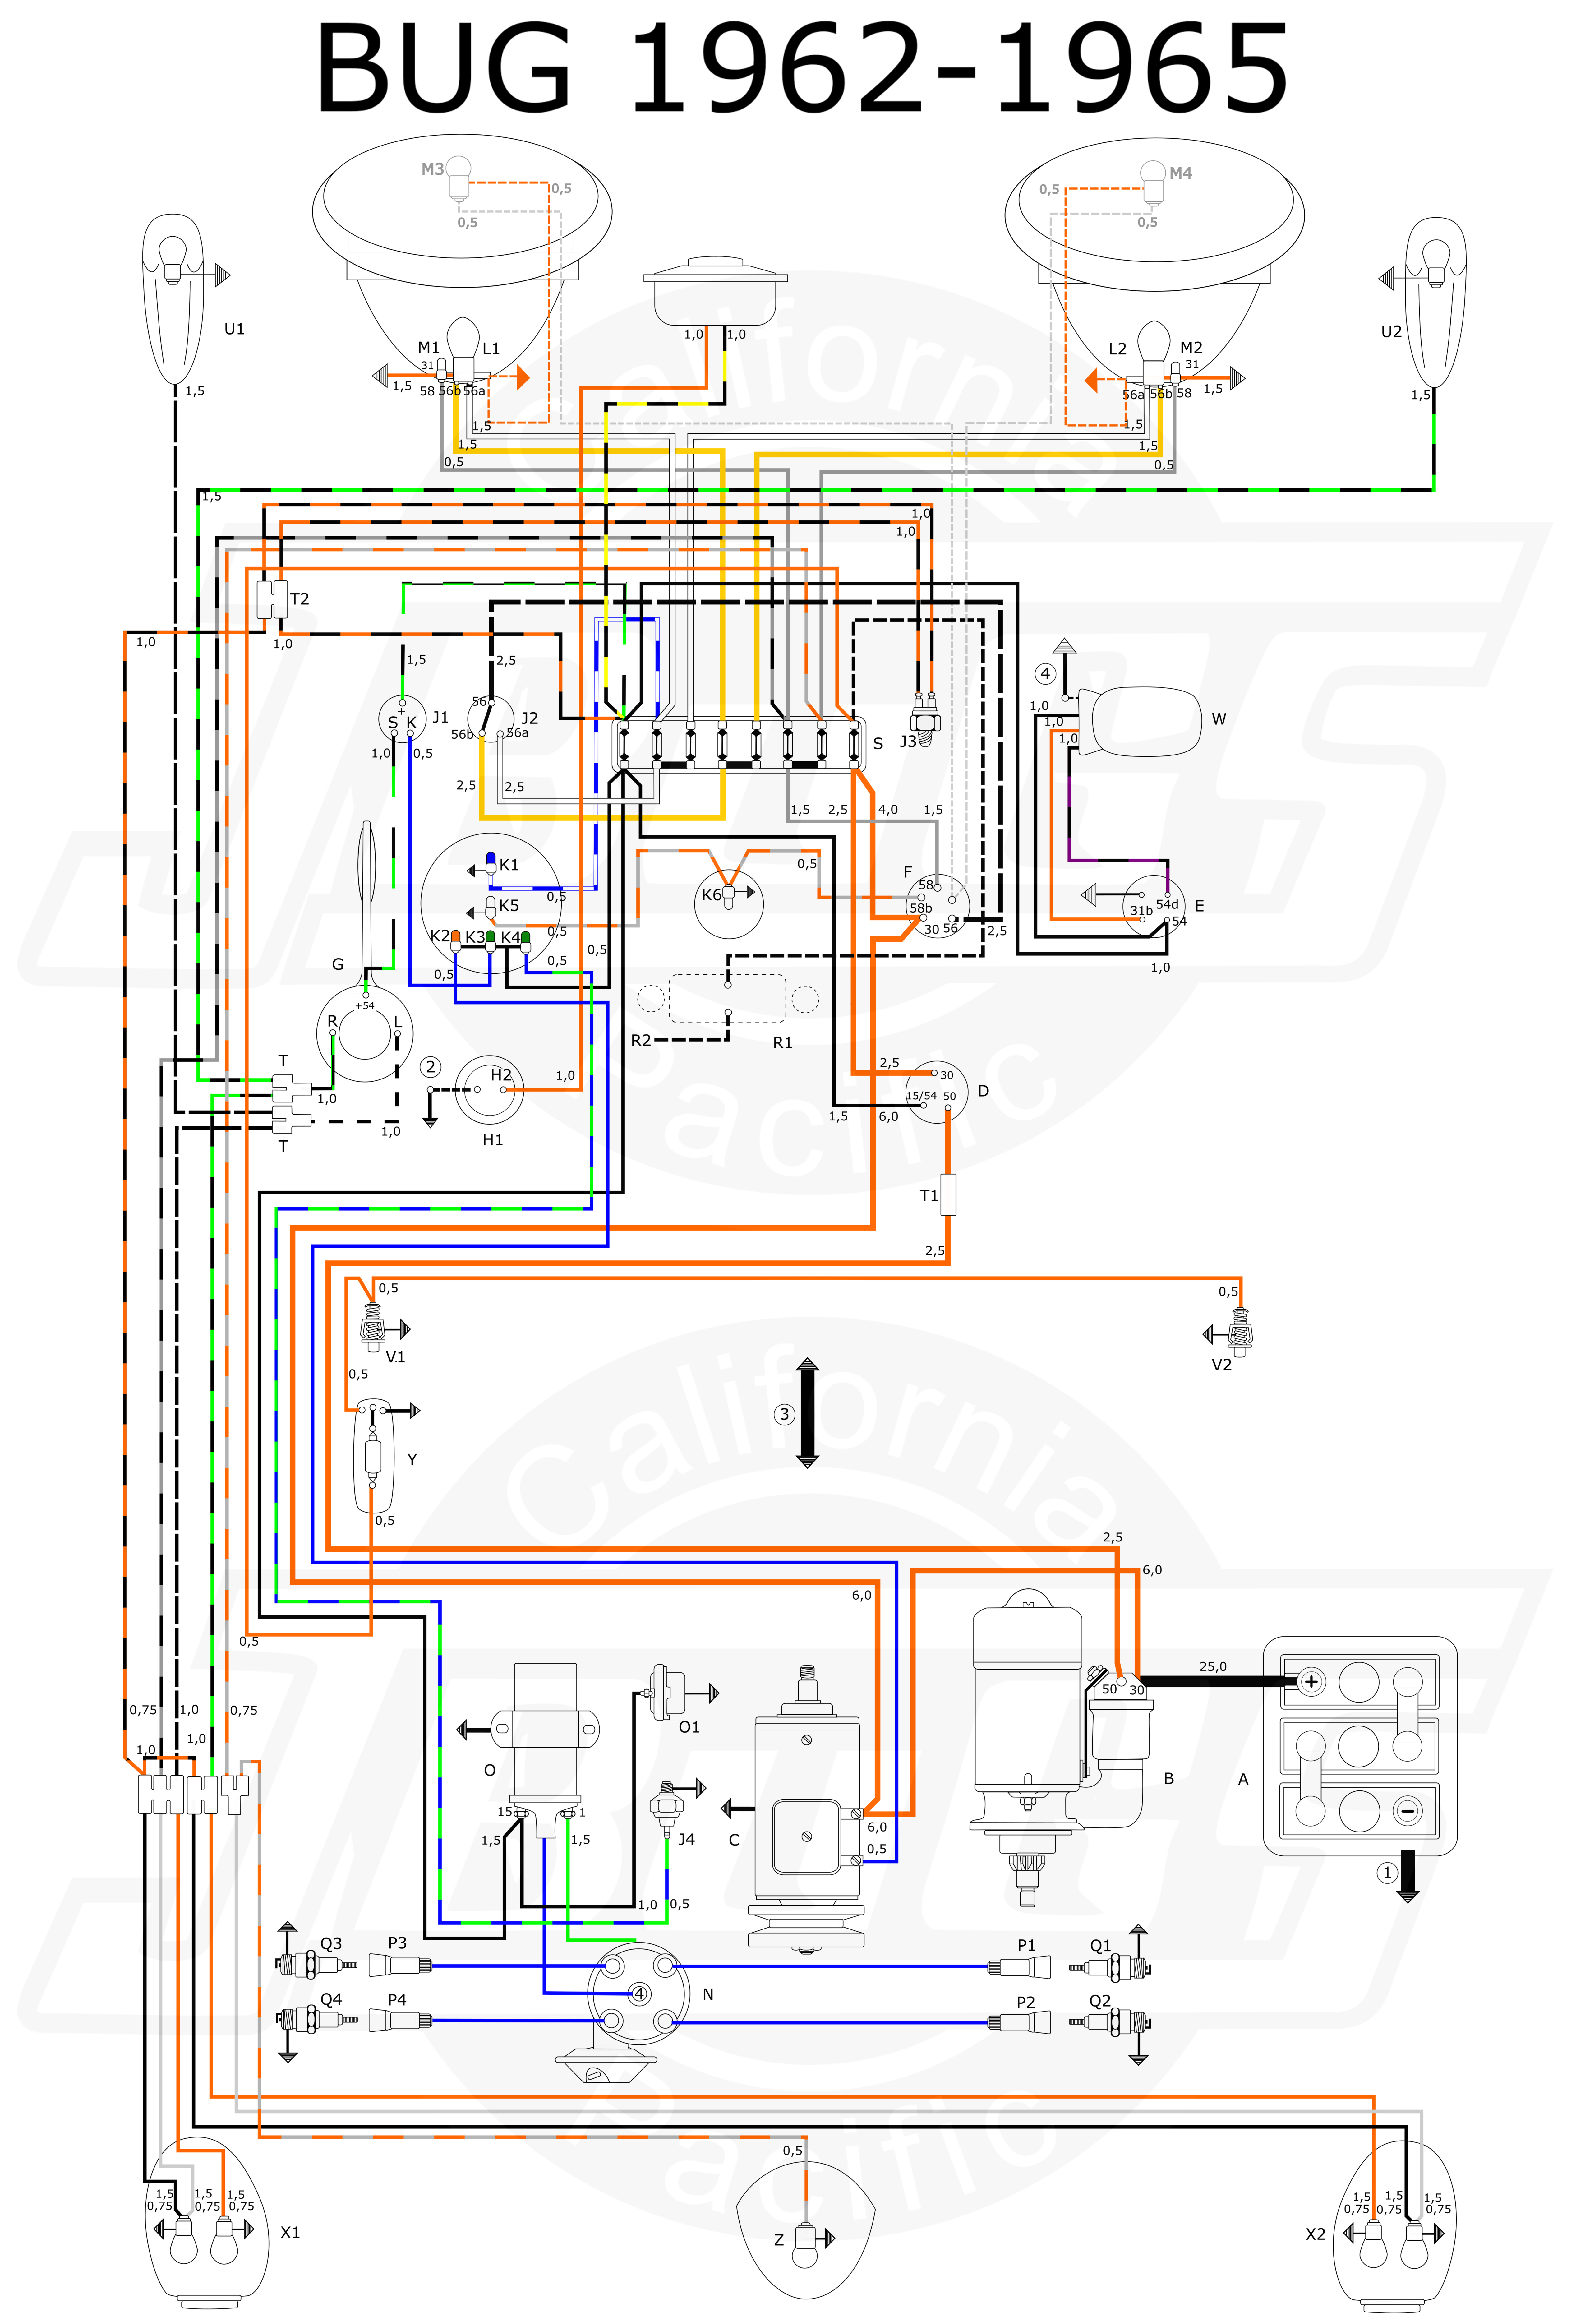 Faria Fuel Gauge Wiring Diagram Circuit Schema Boat Troubleshooting Will Be A